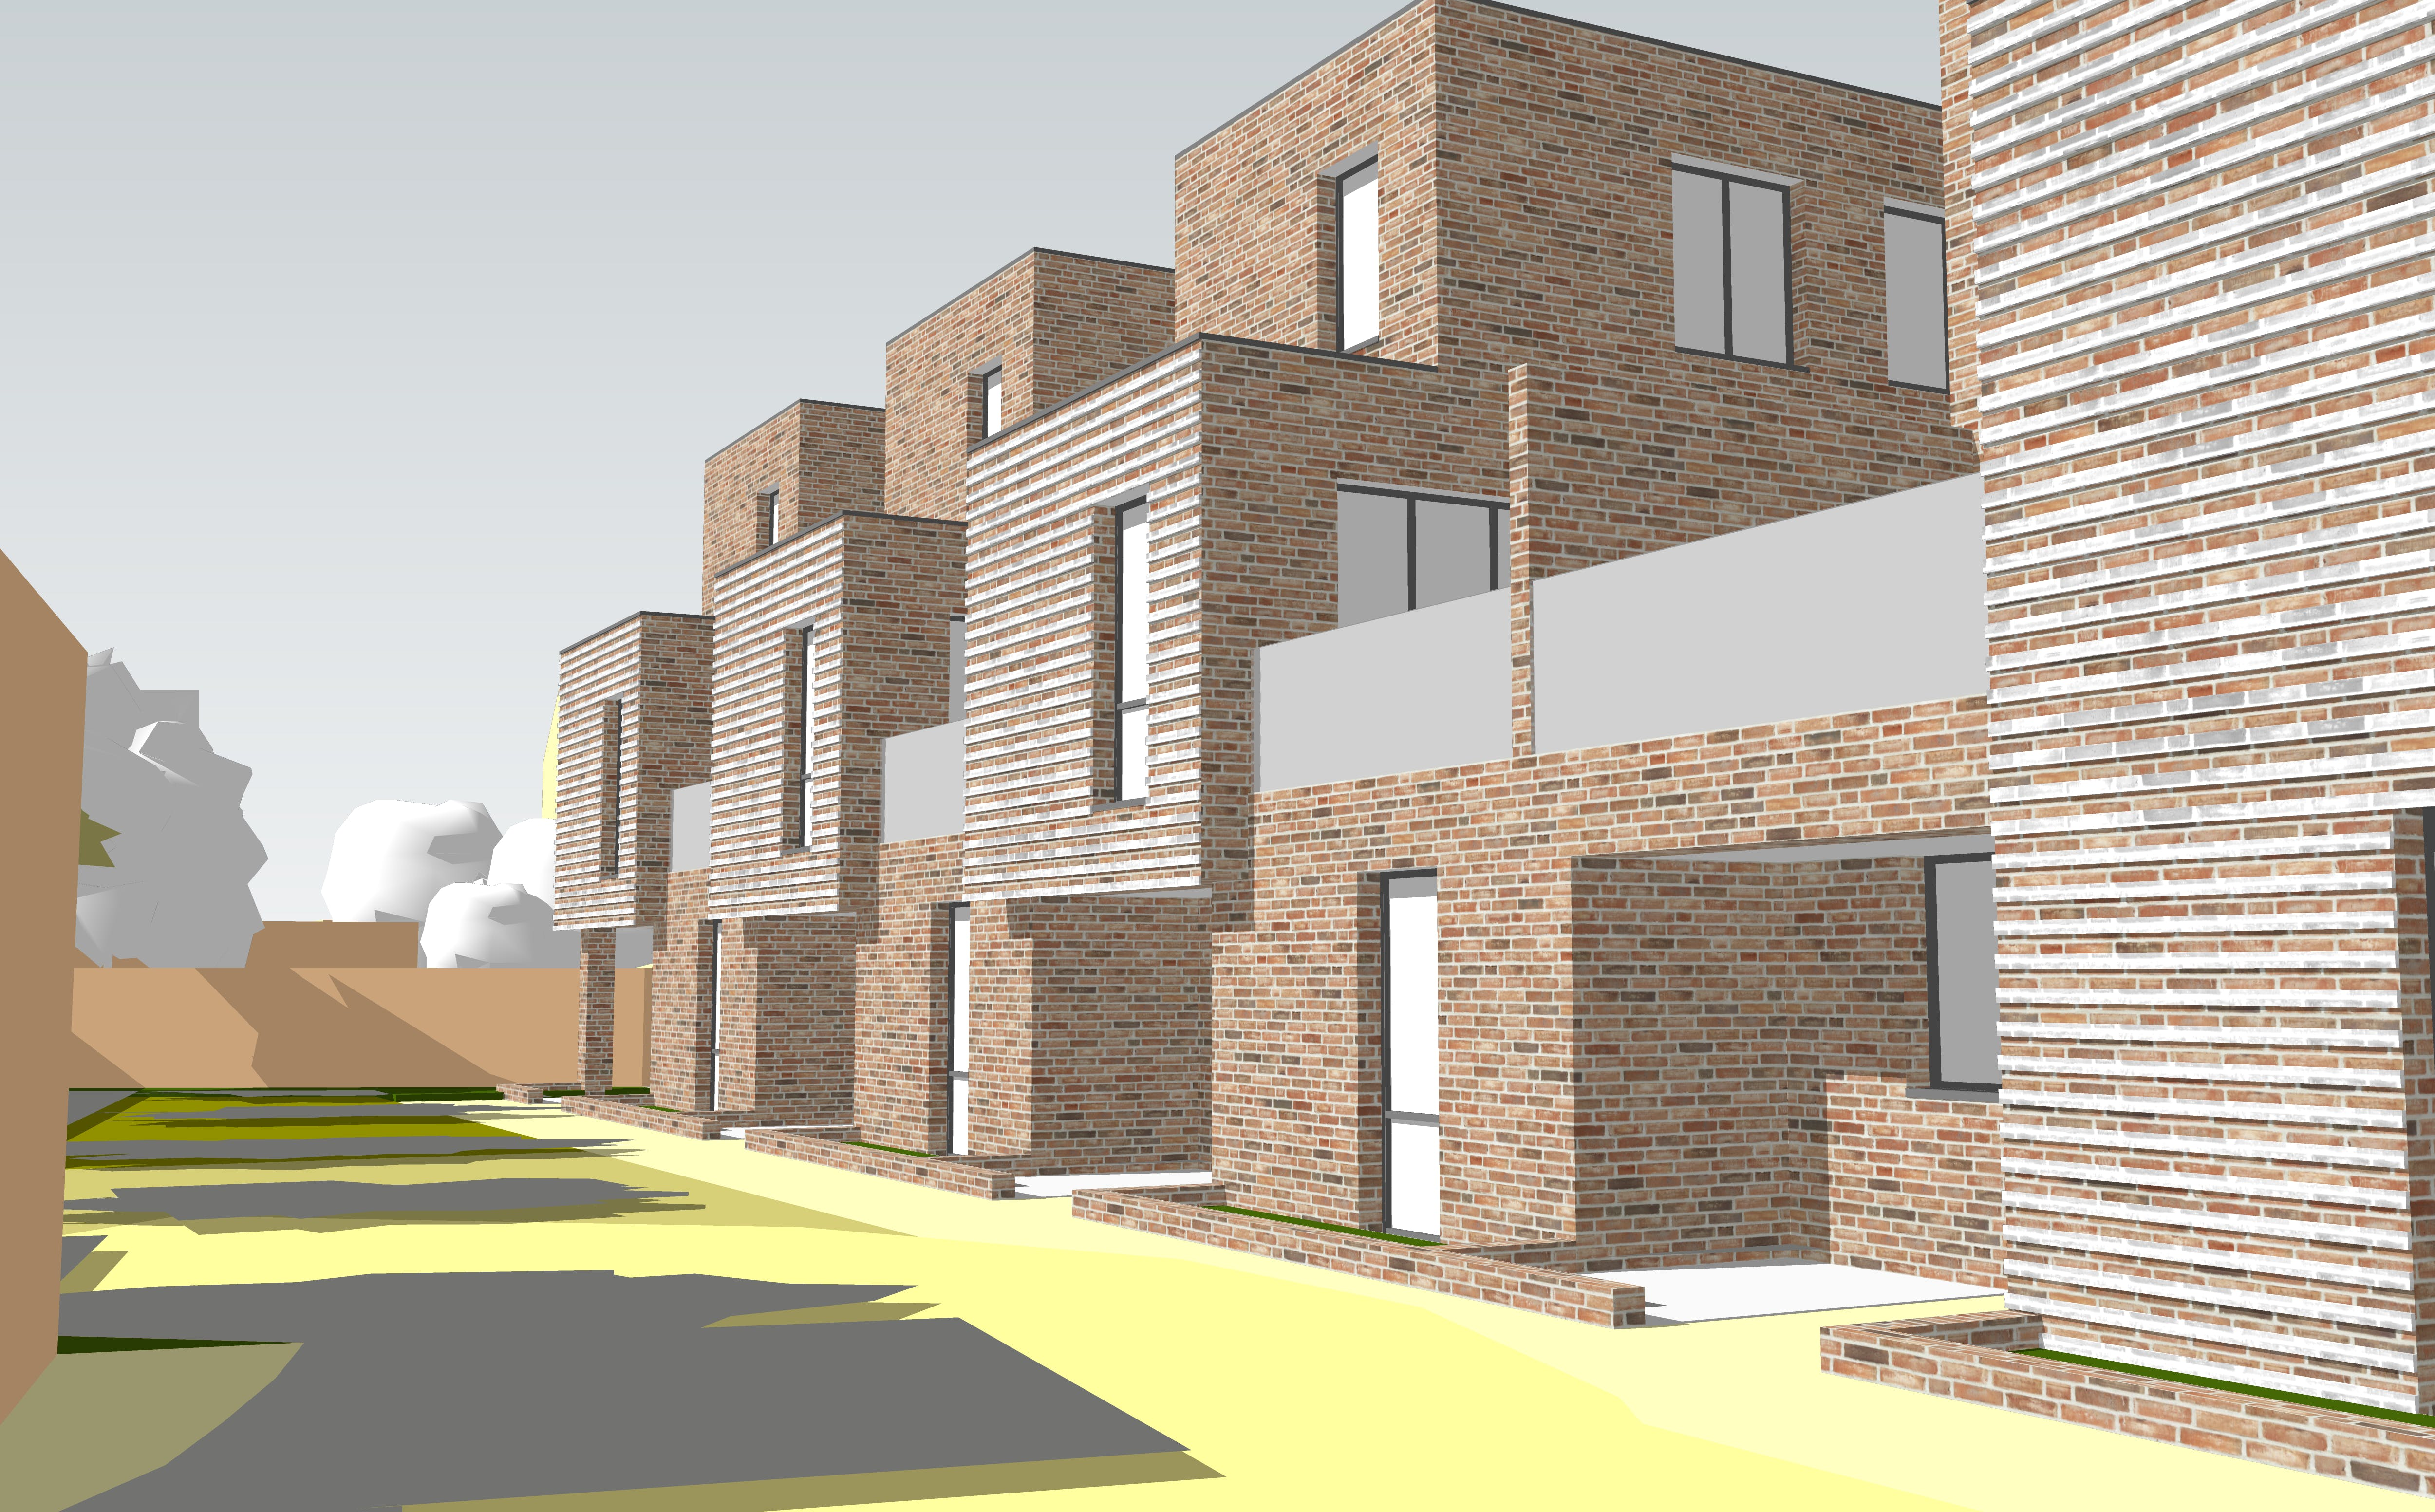 Architect's image of the proposed development (2)